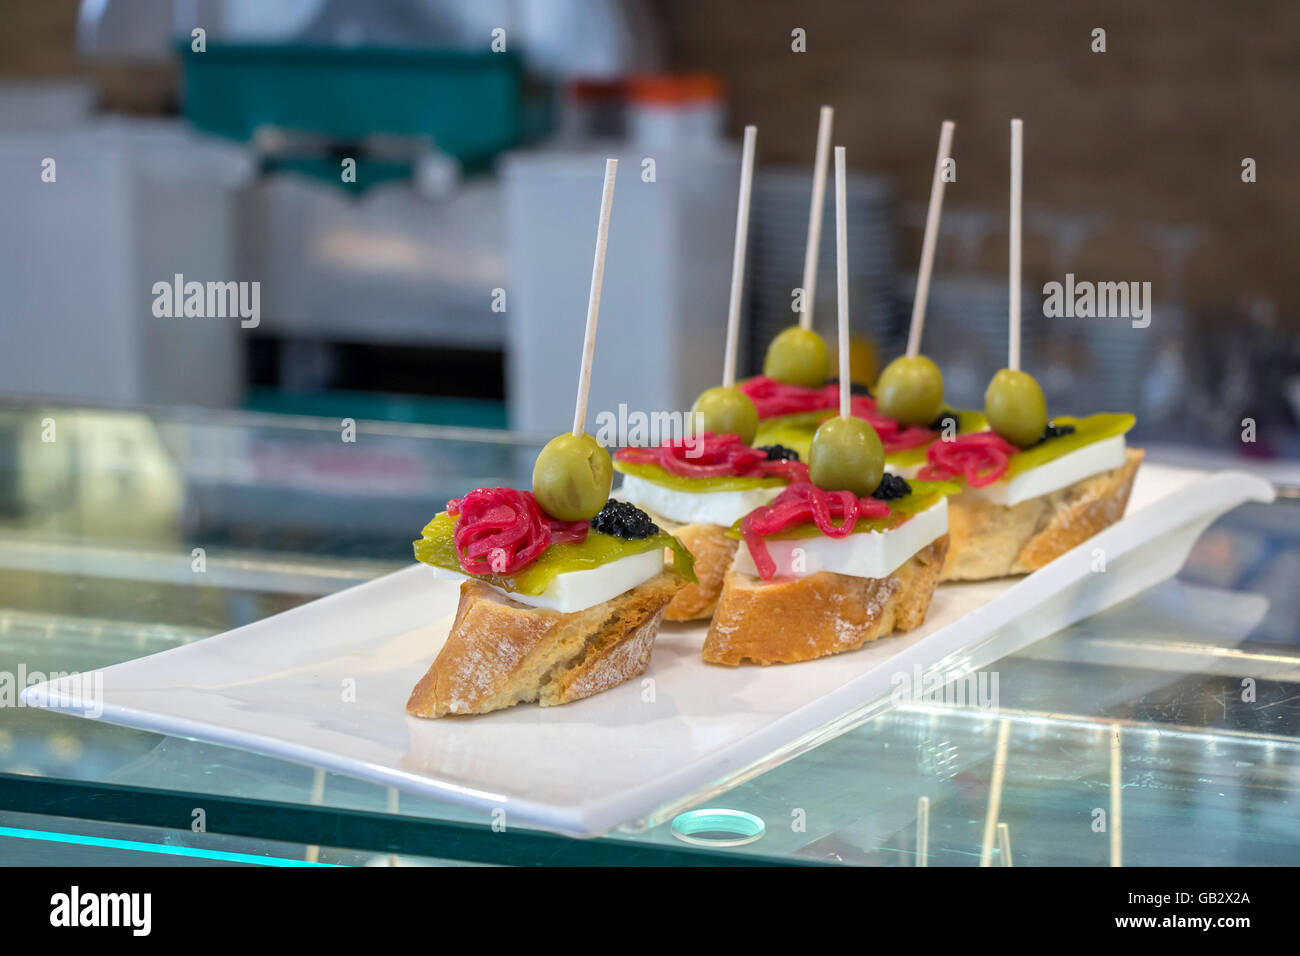 Pintxos o famose tapas spagnolo tartine party finger food Immagini Stock